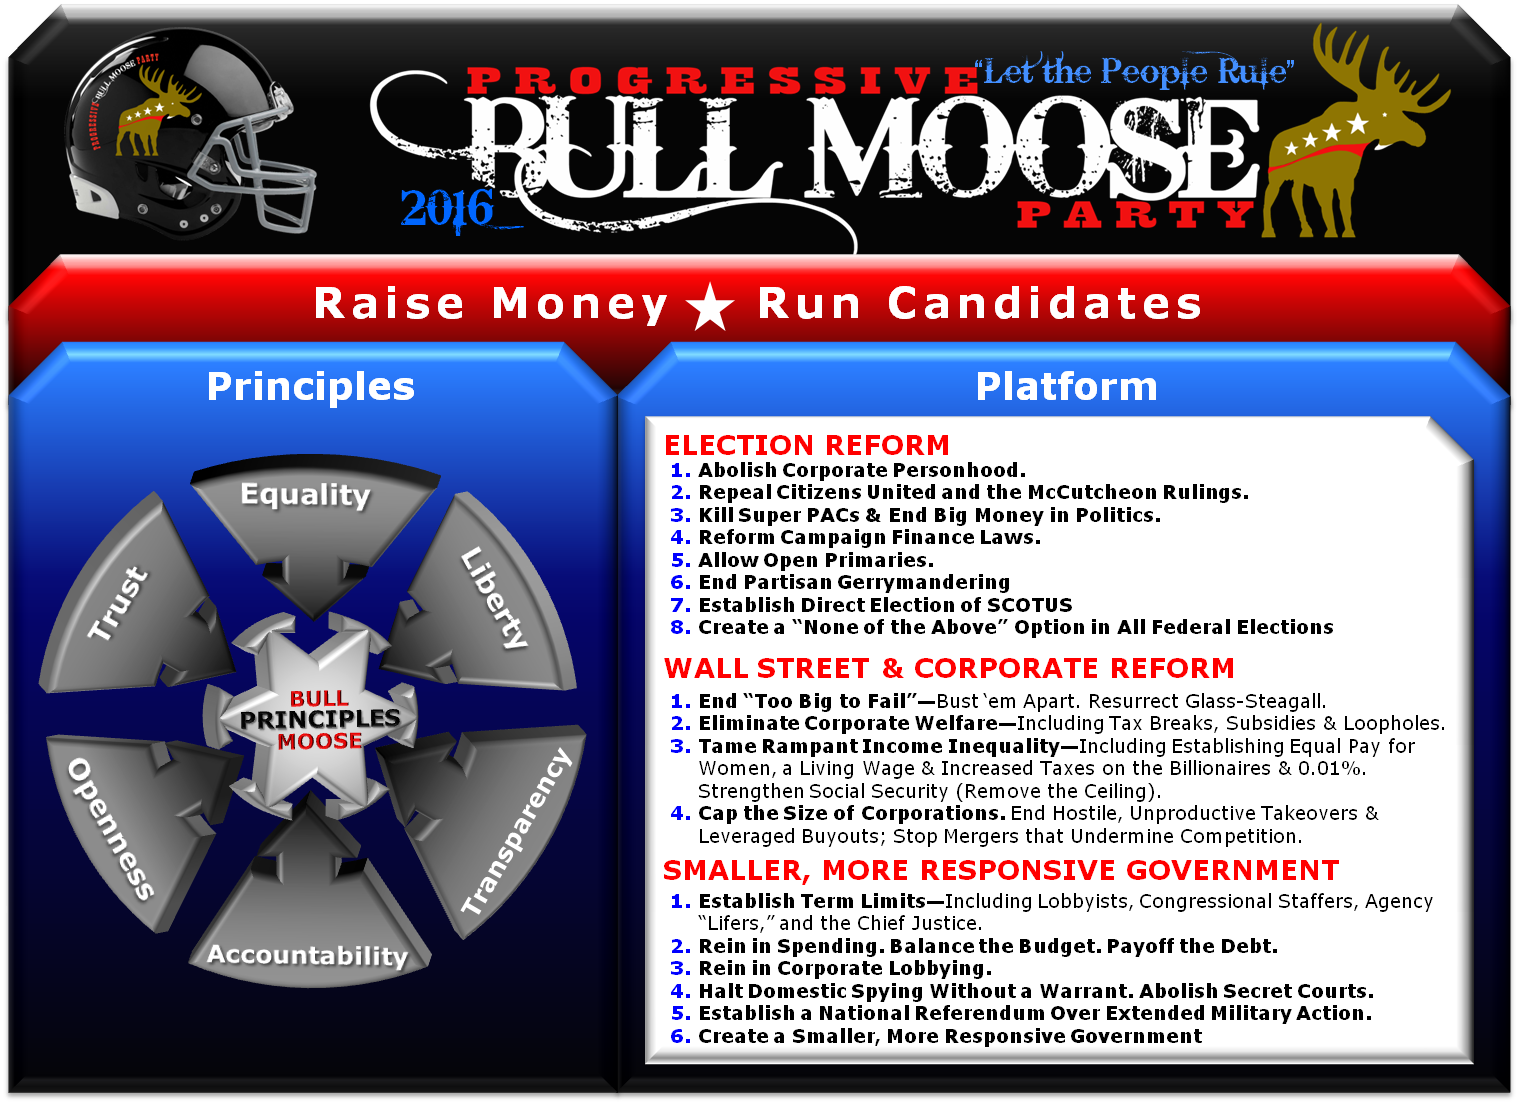 "the bull moose party The progressive party was a political party in the united states after the progressive party's most well-known candidate, theodore roosevelt, said the phrase, i'm feeling like a bull moose, the party was often referred to as the bull moose party [1] "" the conscience of the people, in a time of."